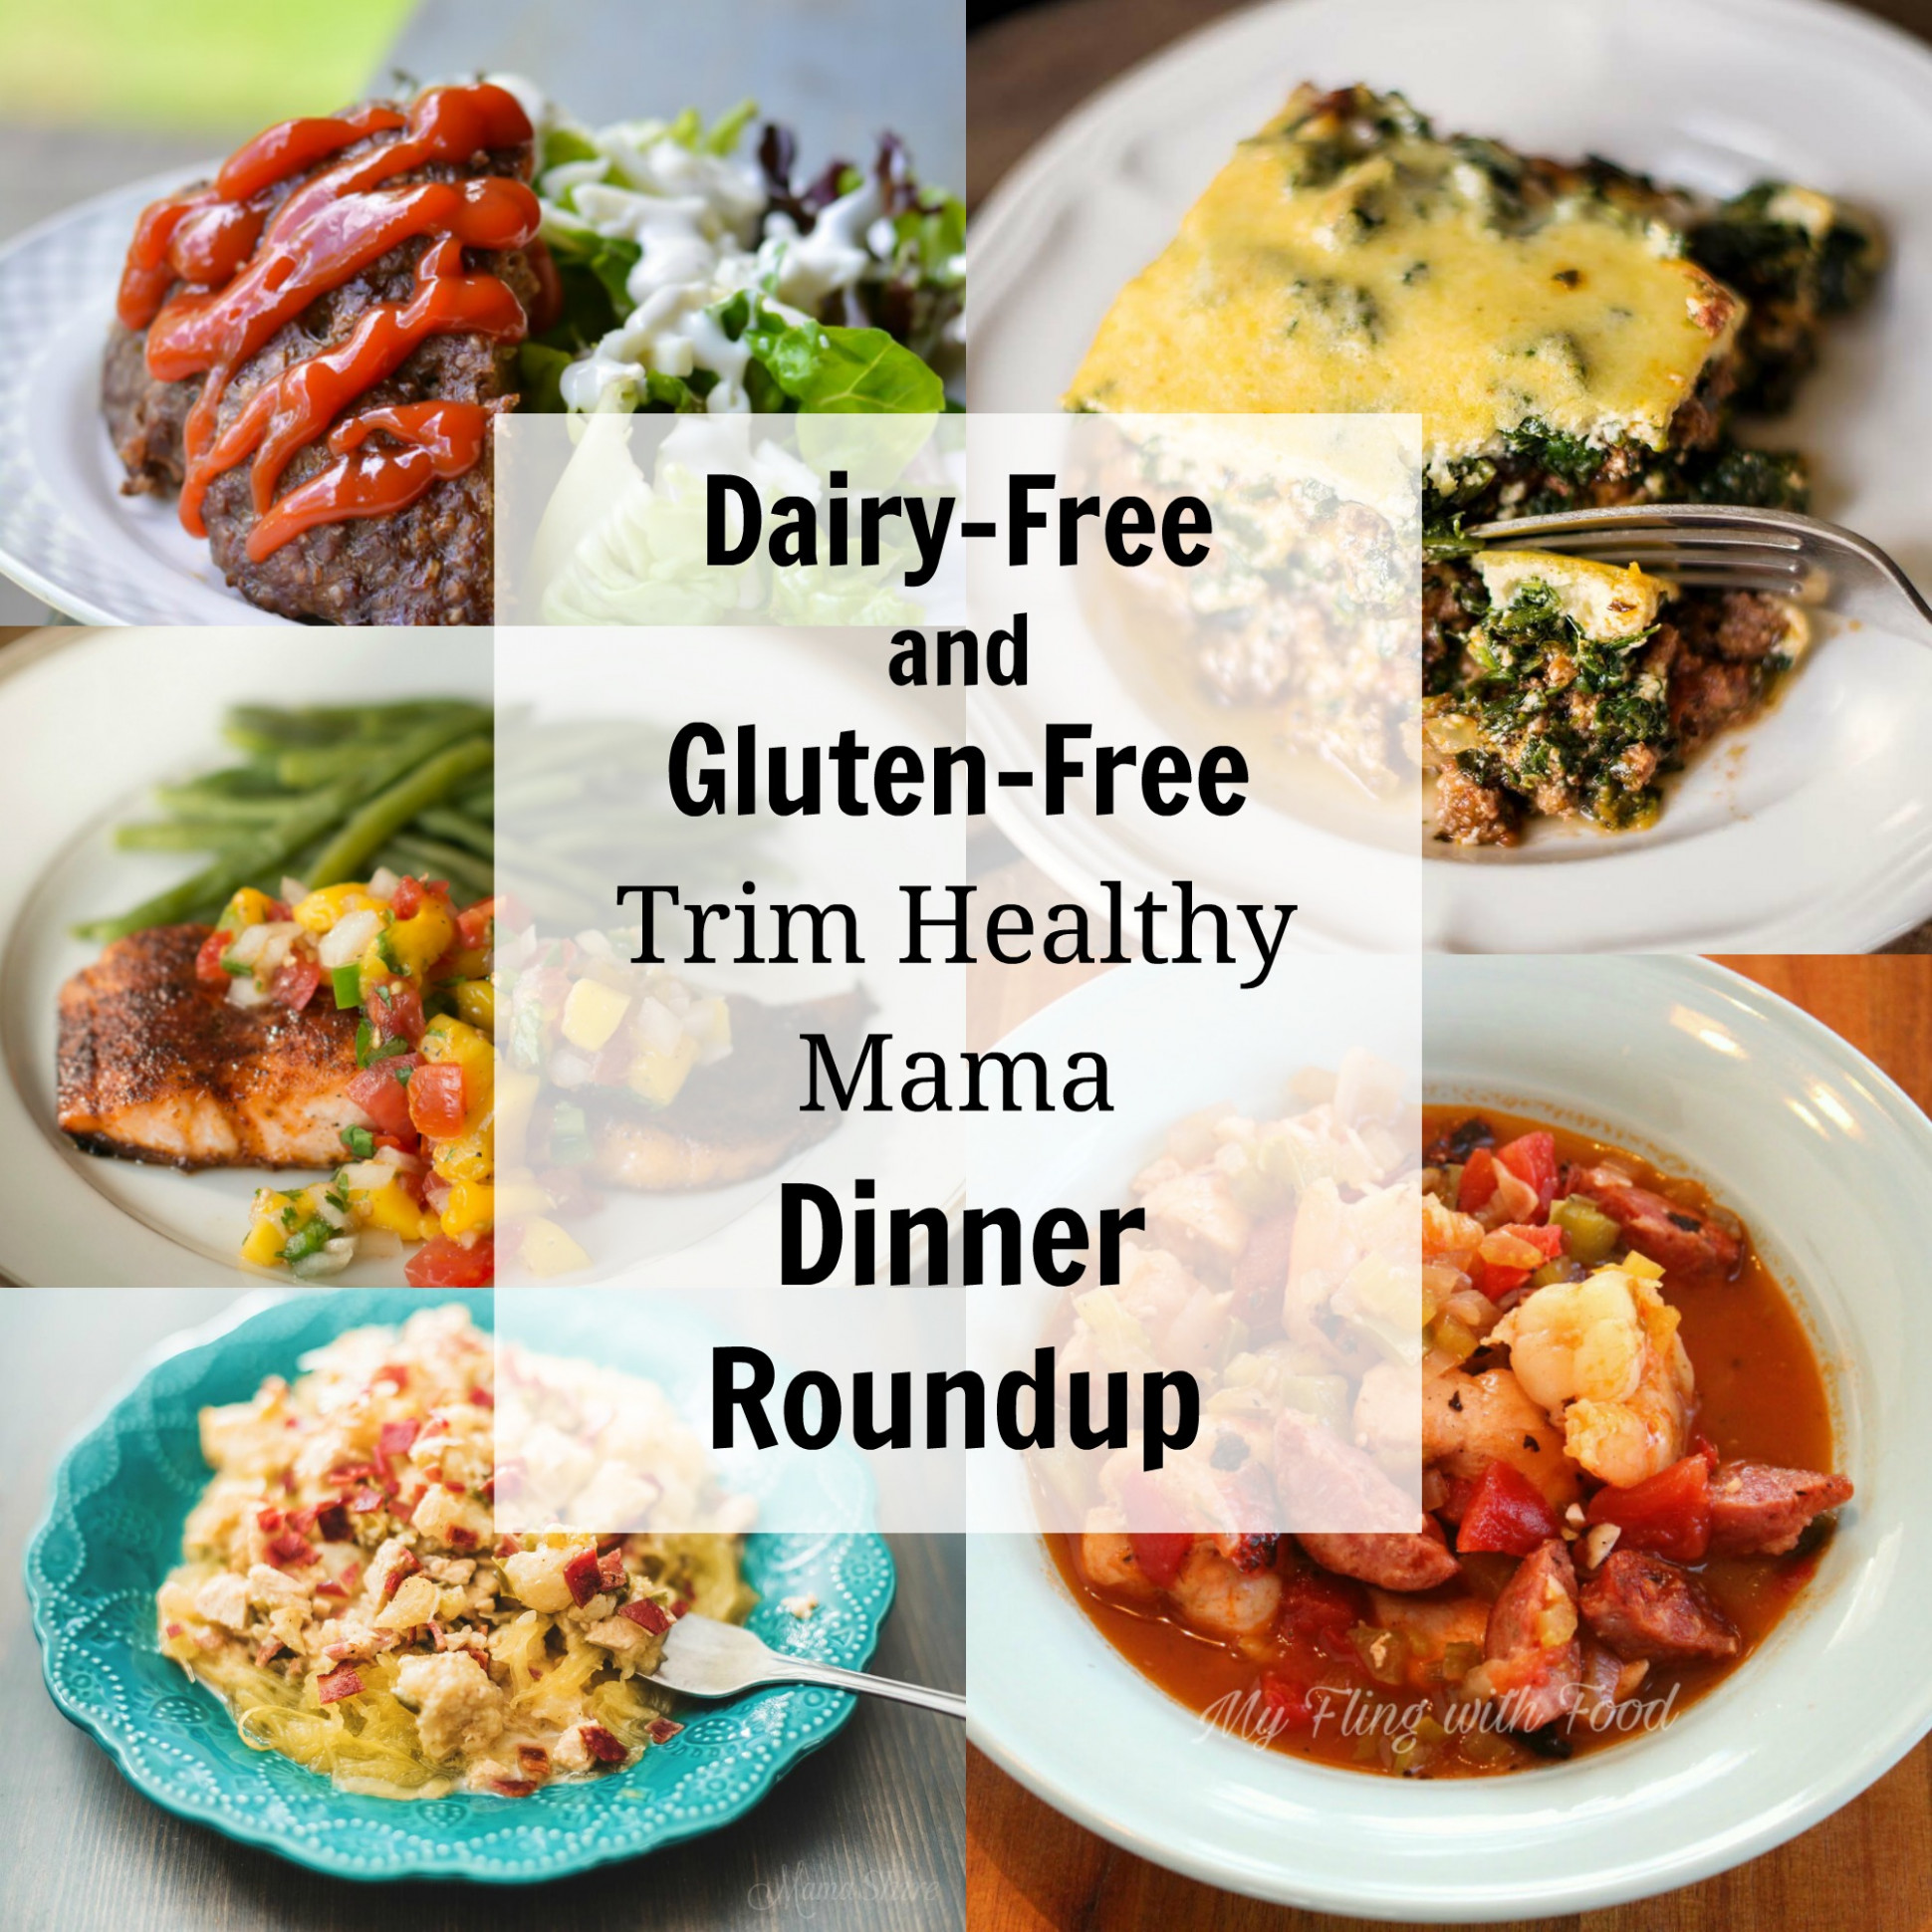 Dairy-Free and Gluten-Free Trim Healthy Mama Dinners ...